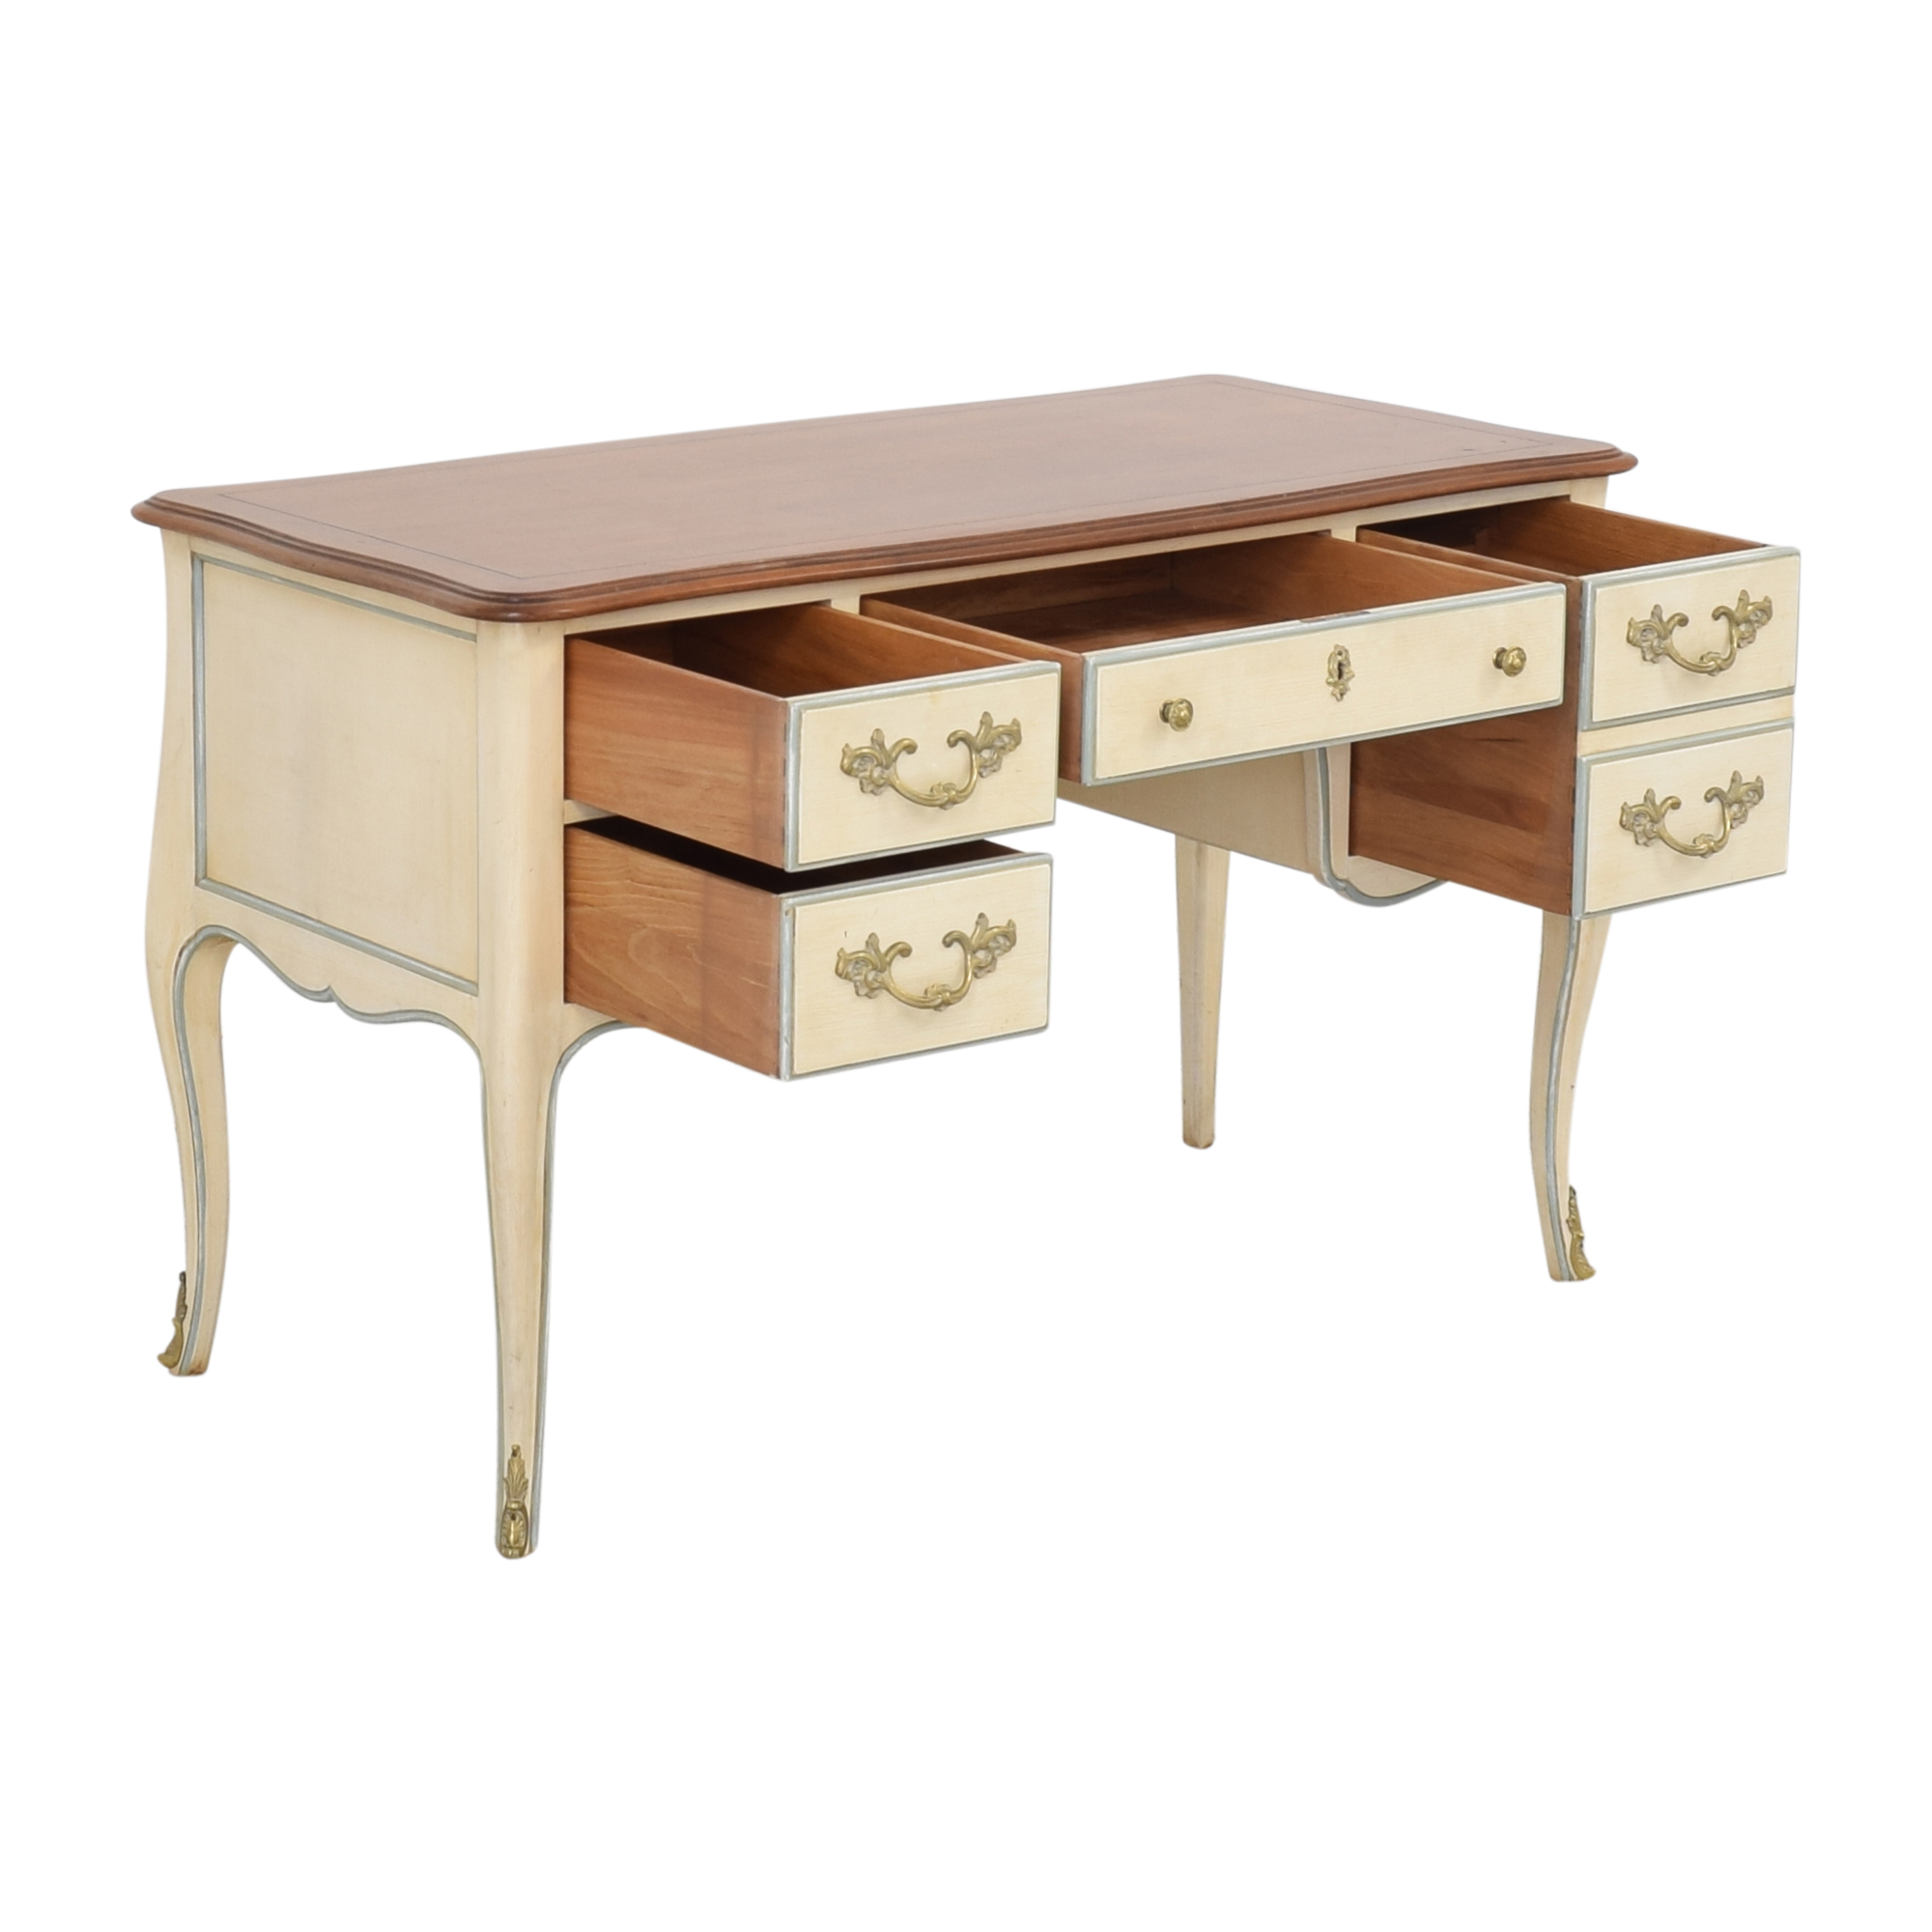 Kindel Kindel Vintage French Provincial Desk nyc